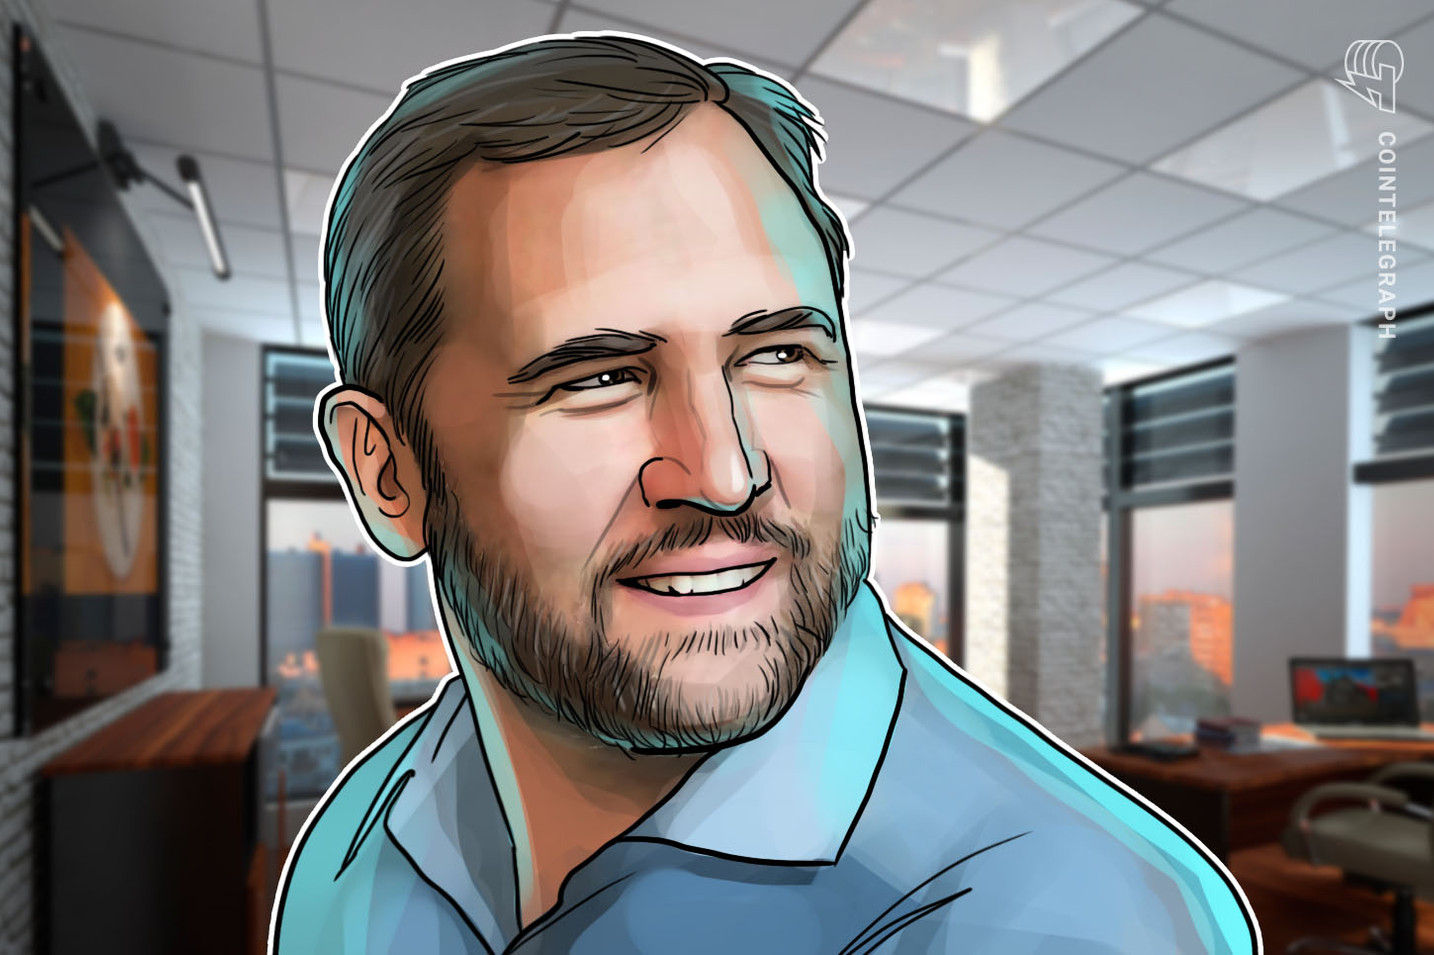 Ripple CEO: Even the Banking Goliaths Will Have to Embrace Crypto, Blockchain Innovation